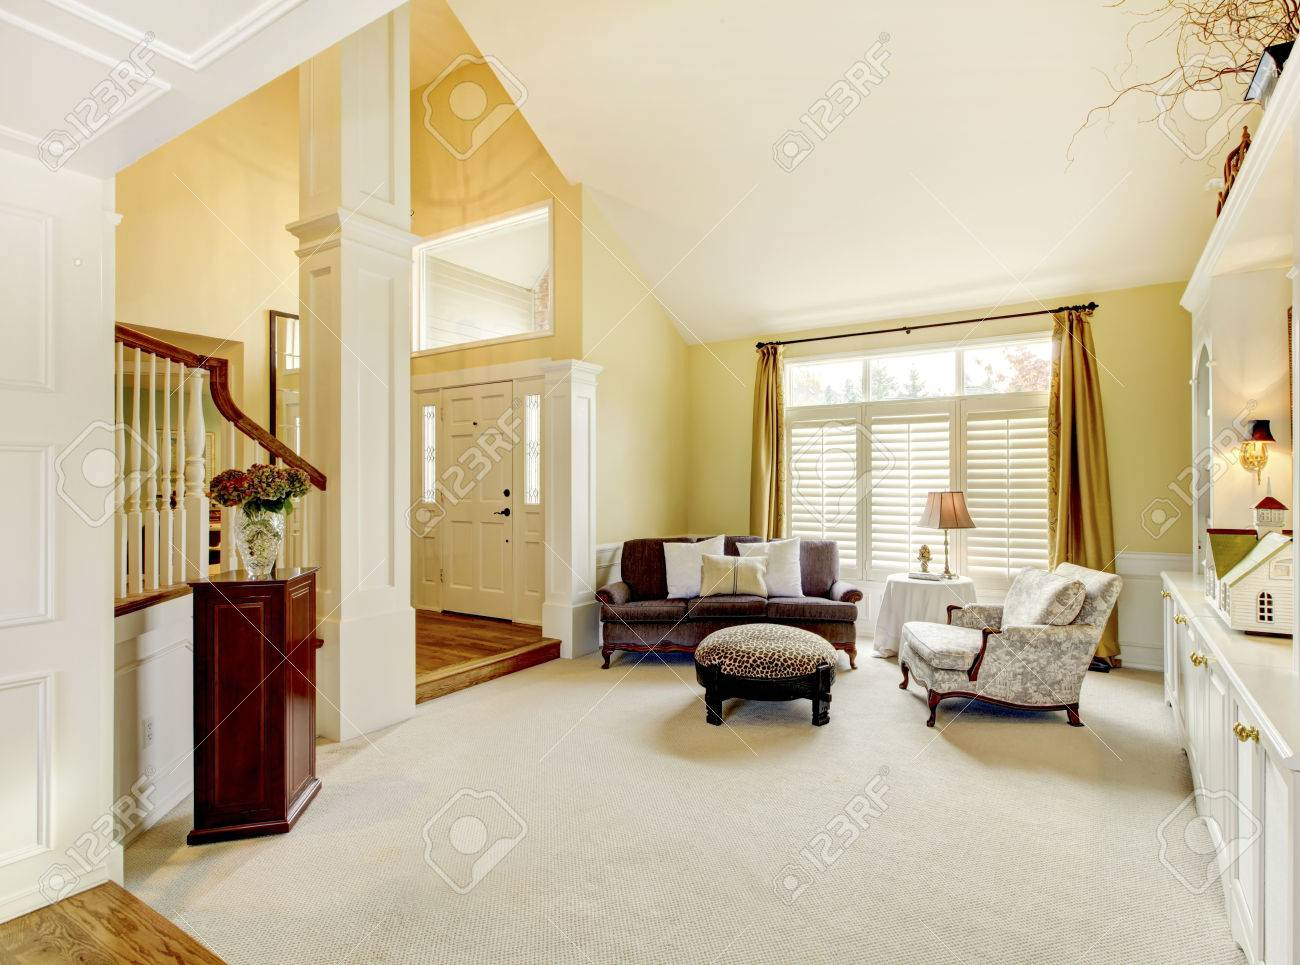 Luxury Home Well Decorated Golden Living Room With Beige Carpet